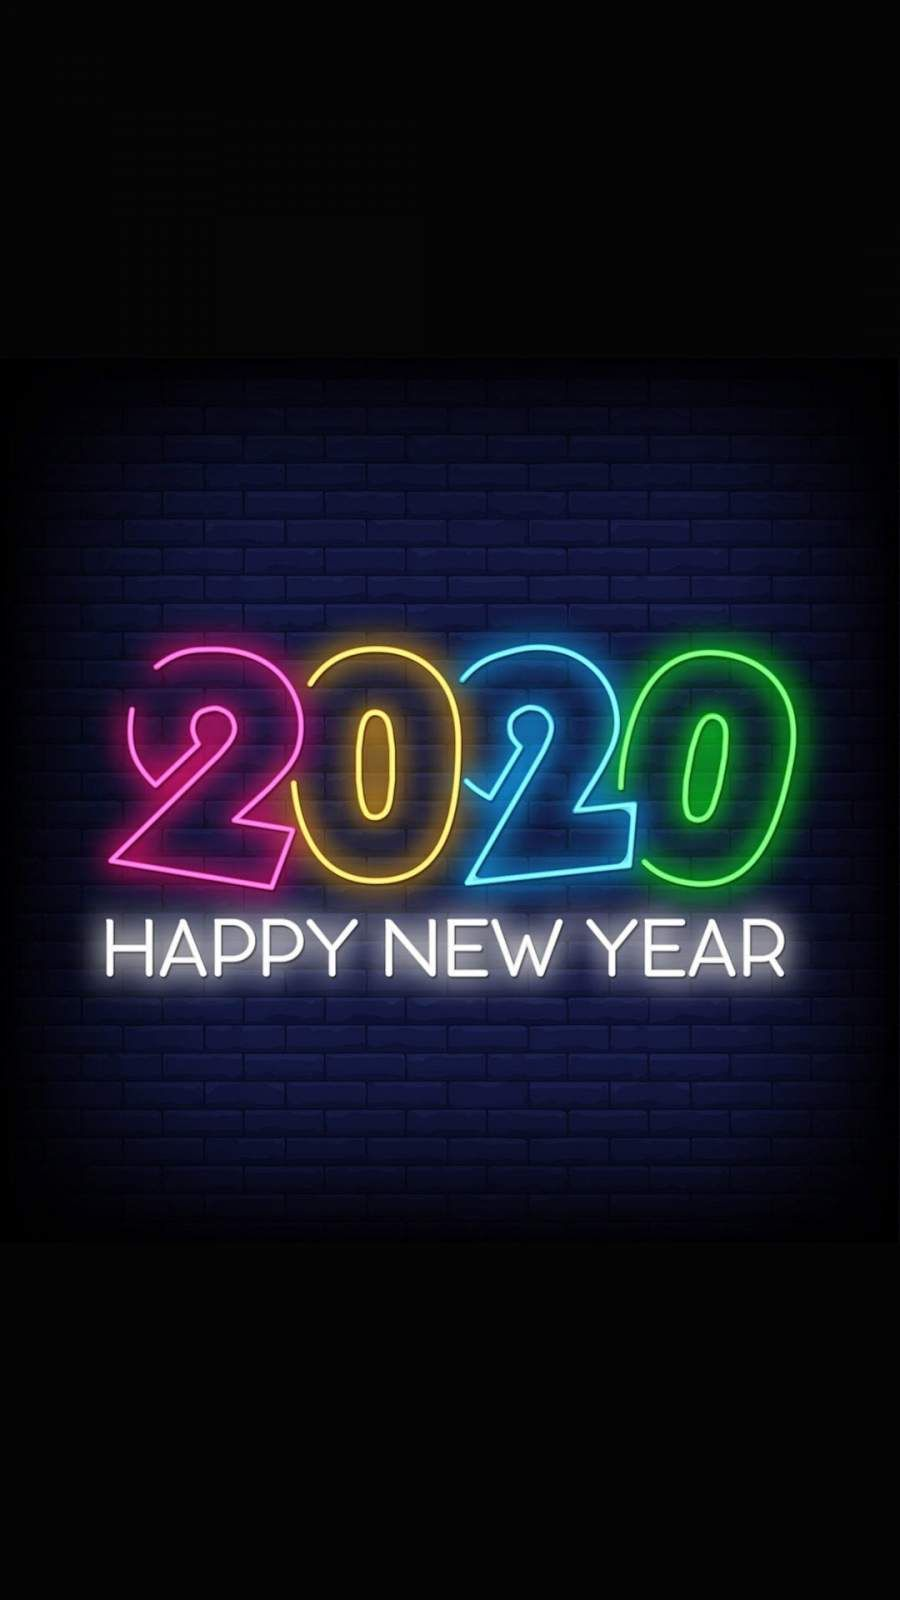 Iphone Wallpapers For Iphone 8 Iphone 8 Plus Iphone 6s Iphone 6s Plus Iphone X And Ipod T Happy New Year Wallpaper Happy New Year Images New Year Wallpaper